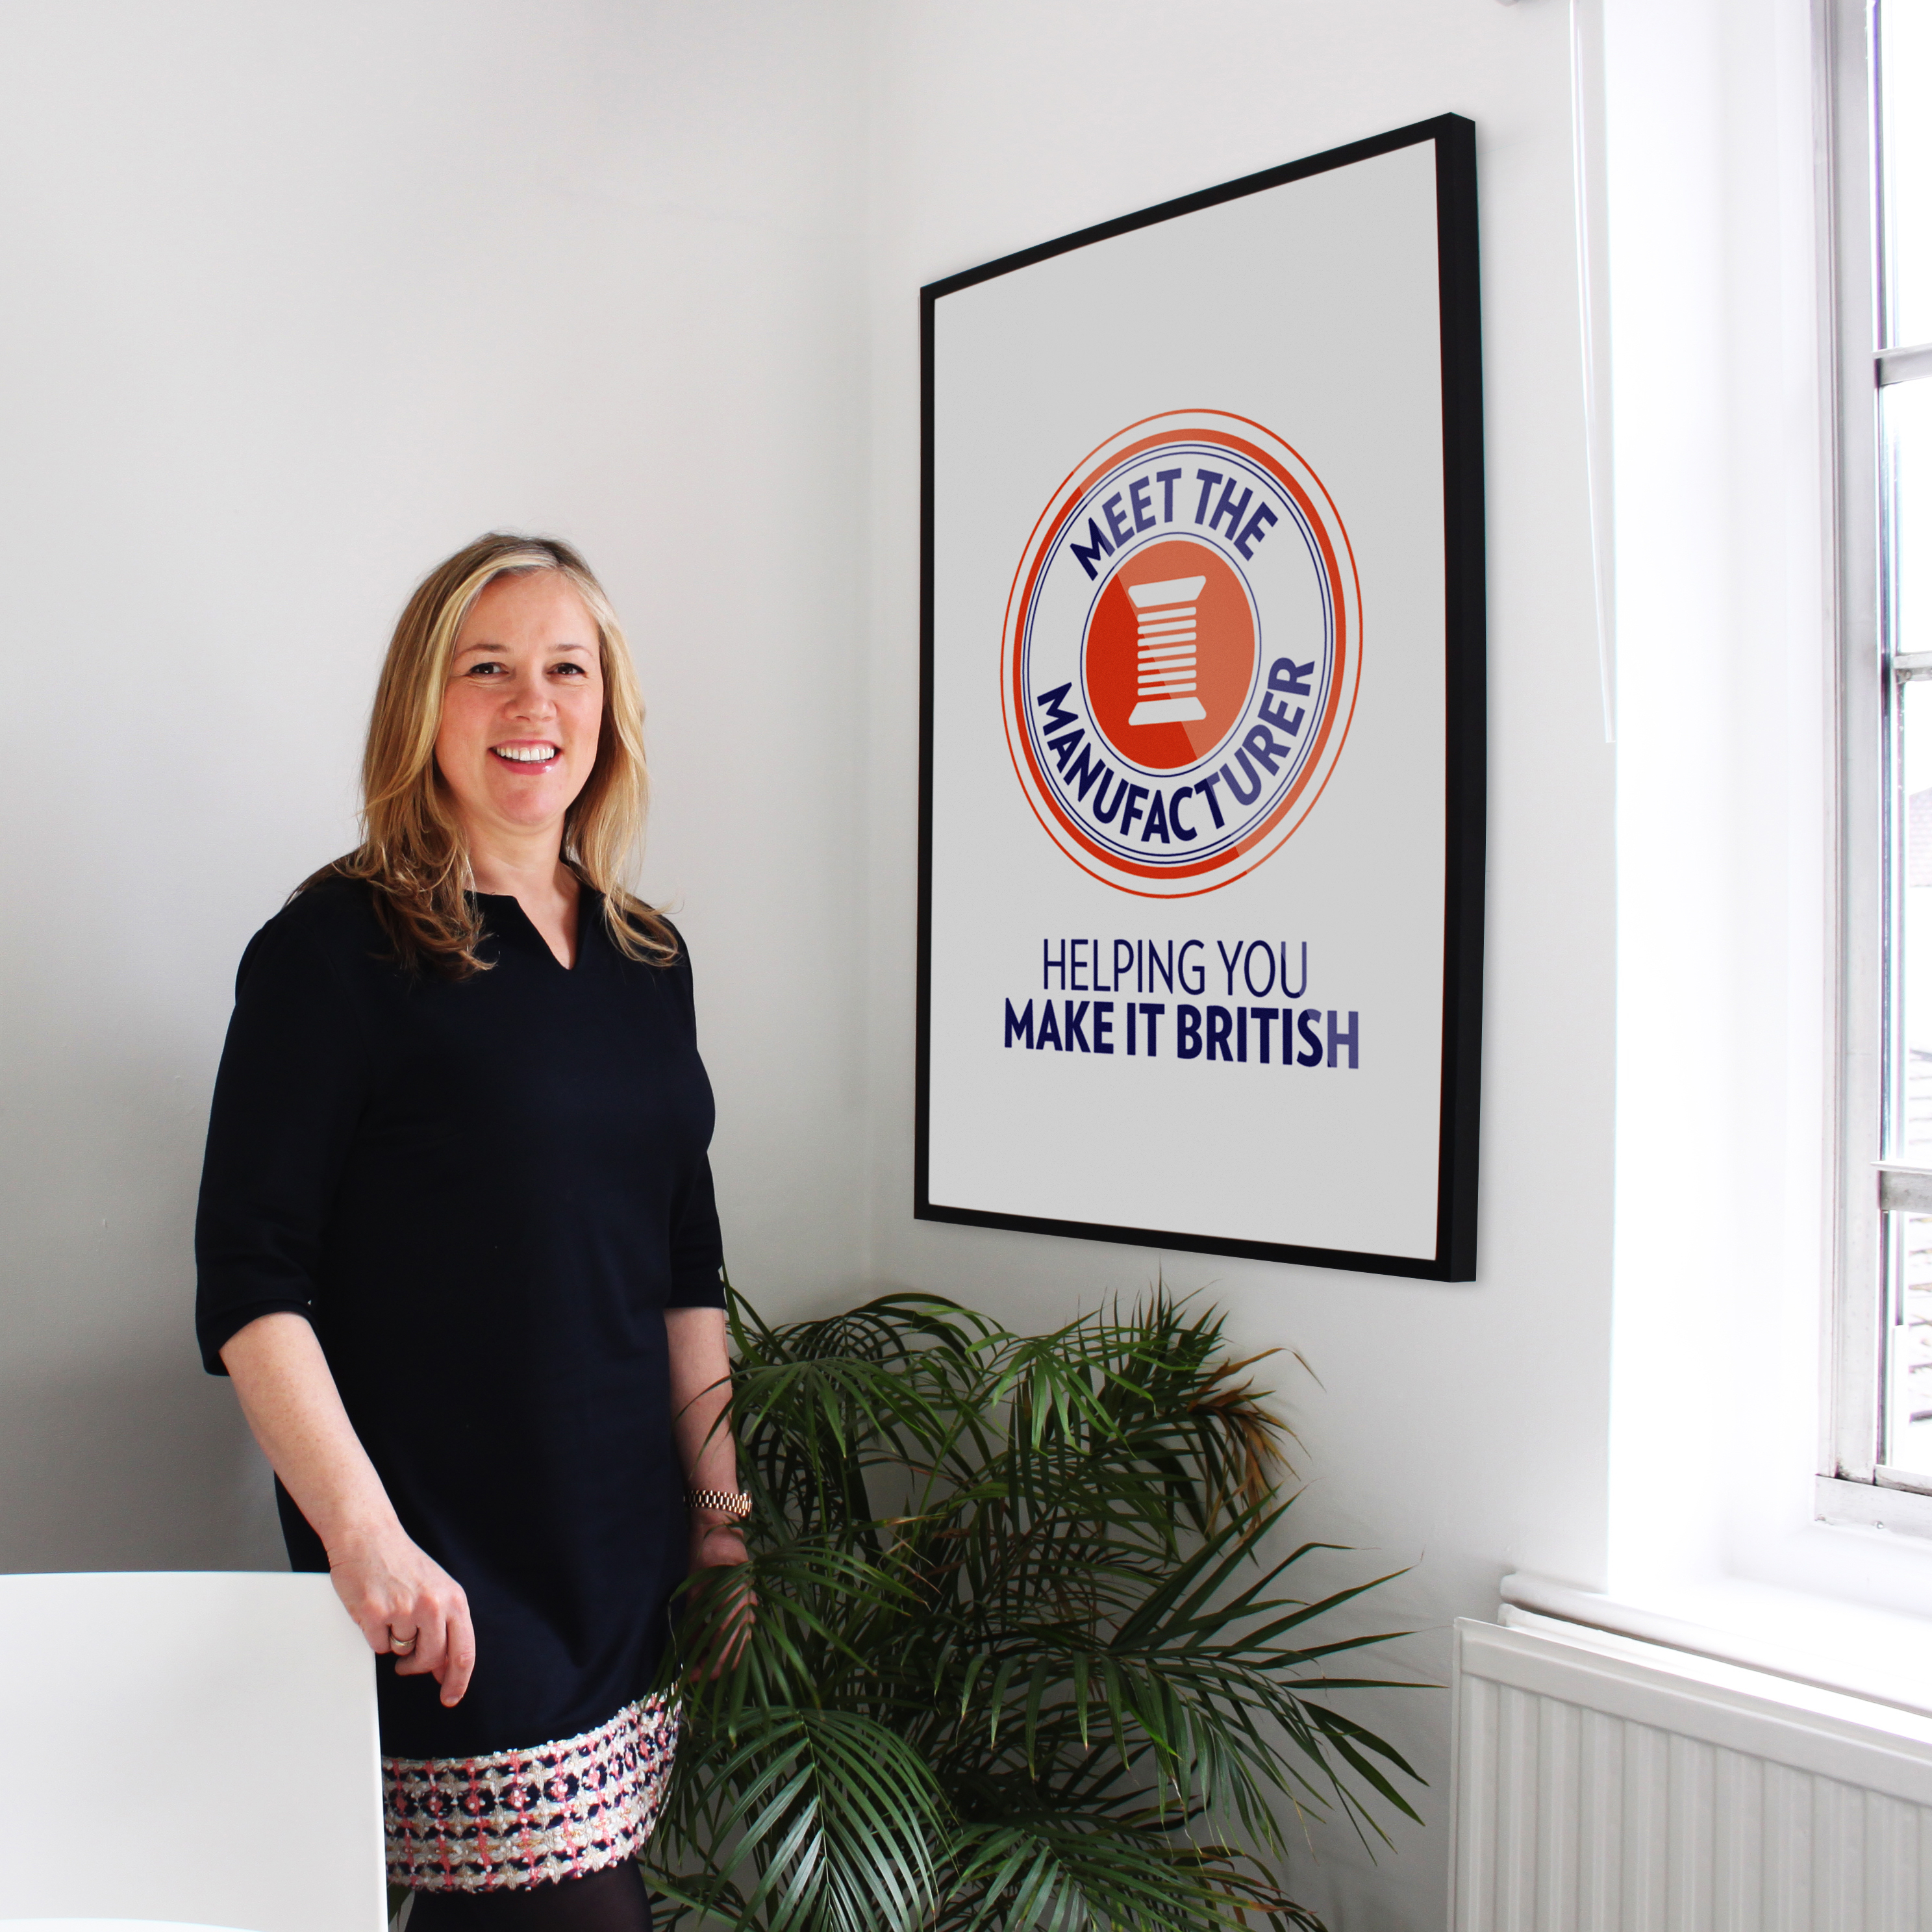 Kate Hills, Founder and CEO of Make it British